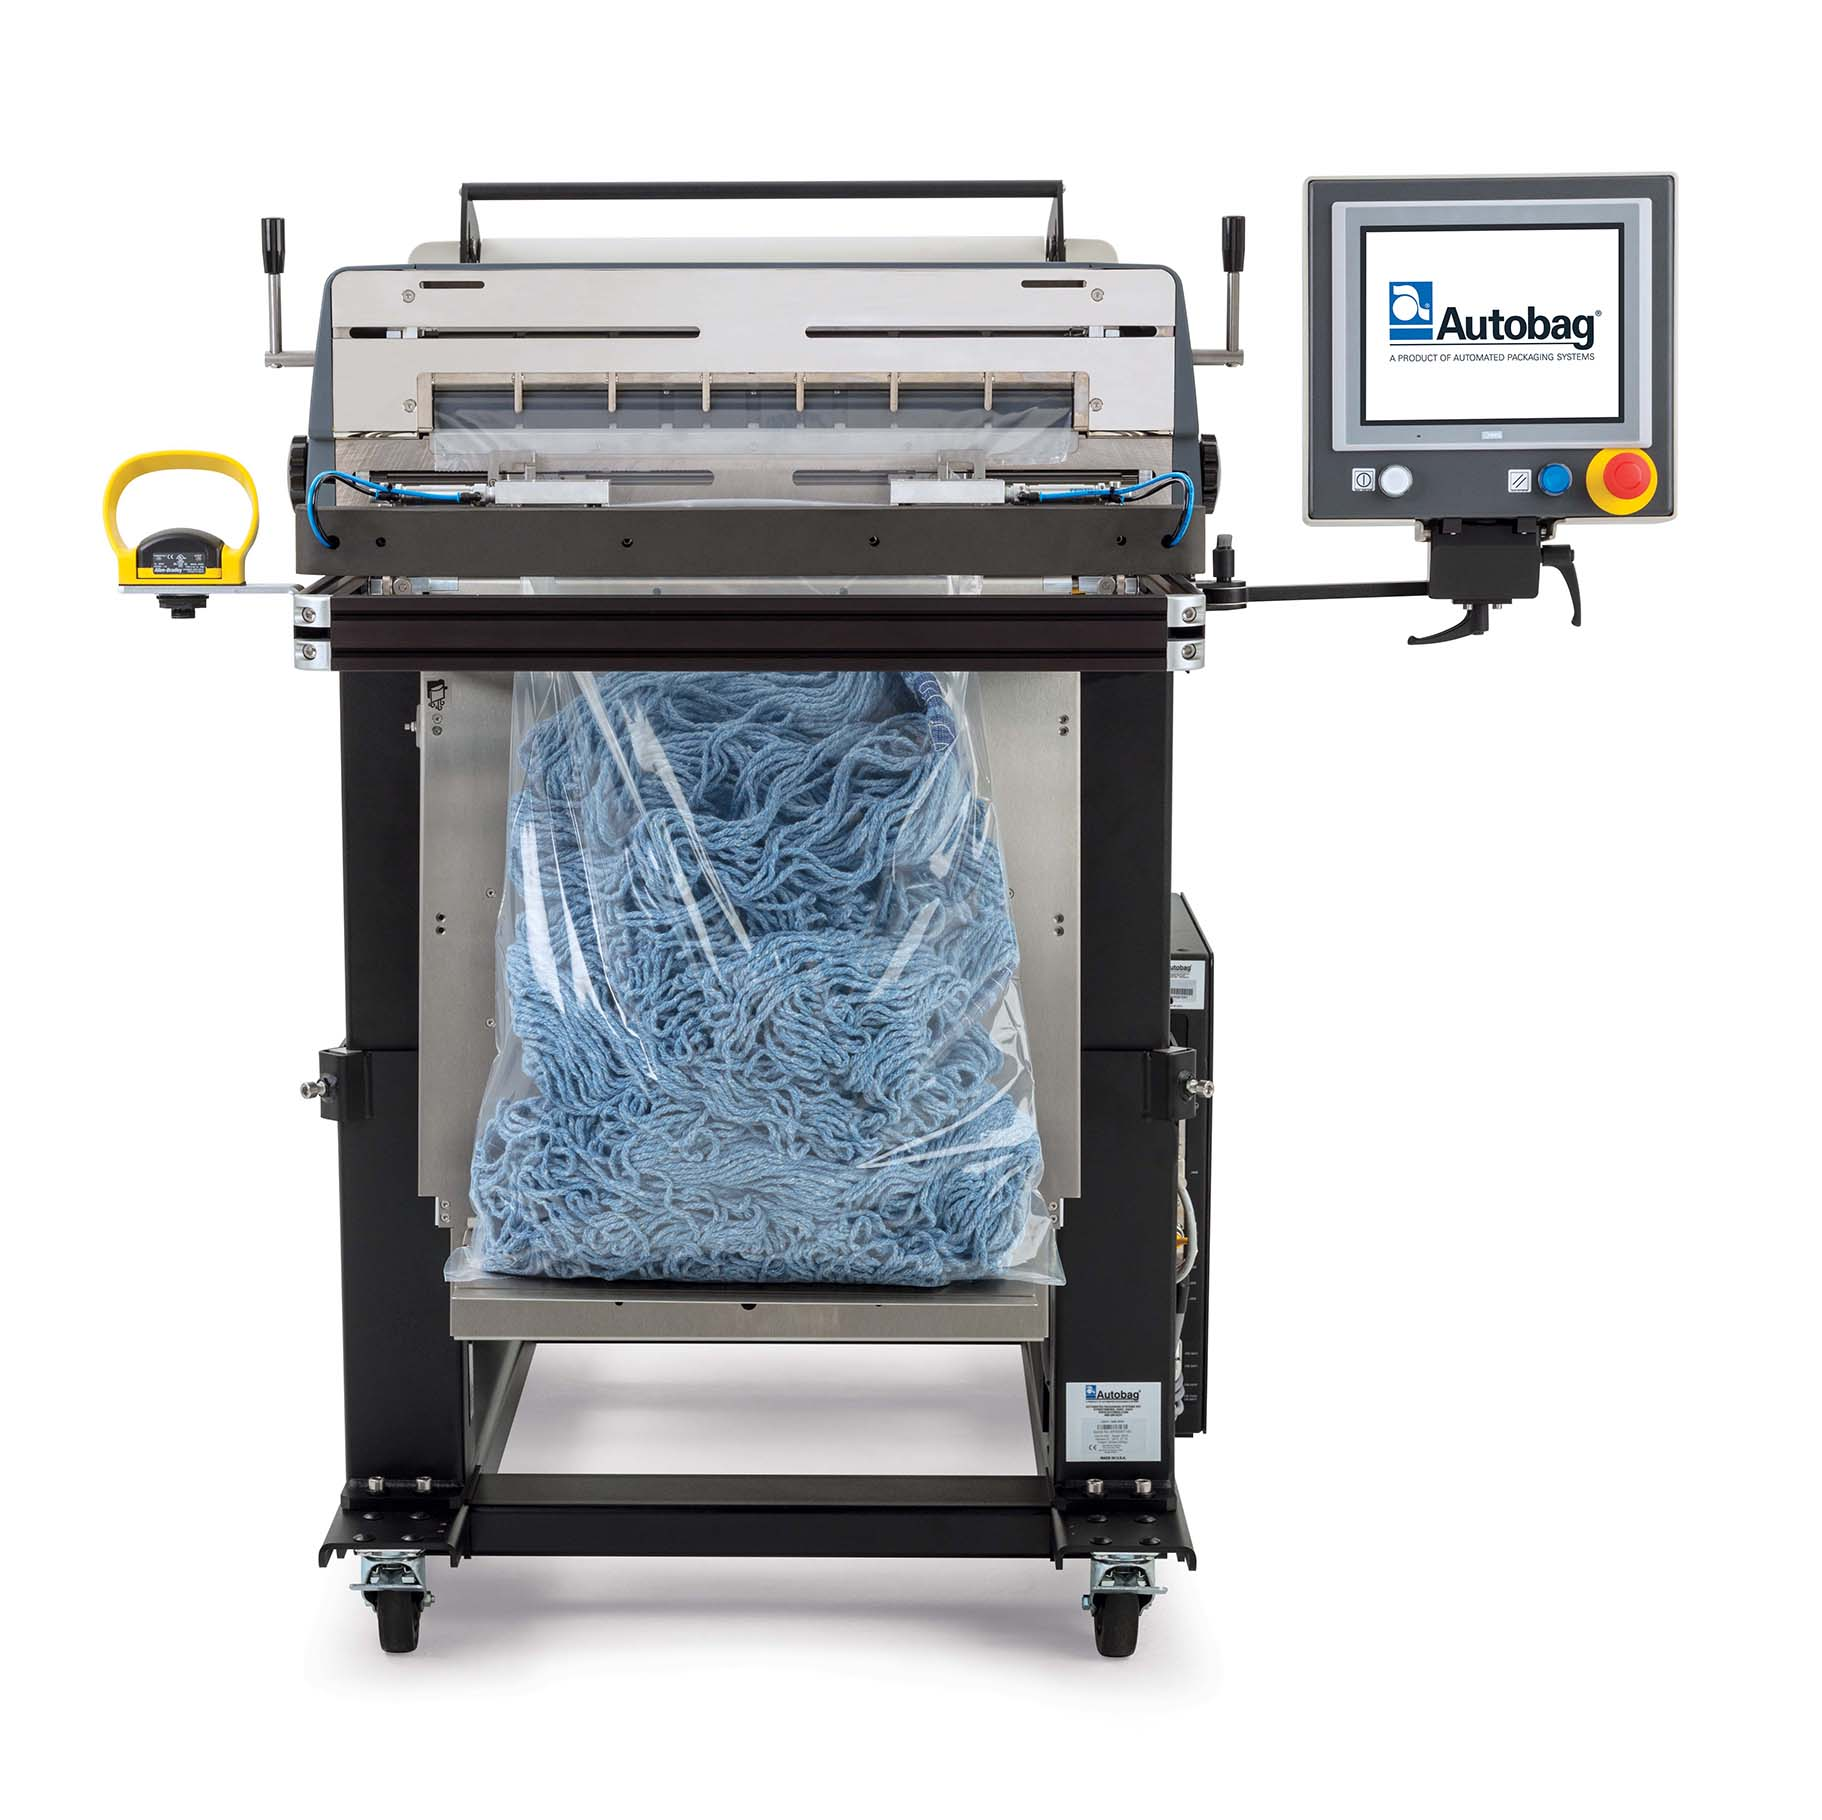 Autobag 800S automatic bag sealer front view mop heads applications